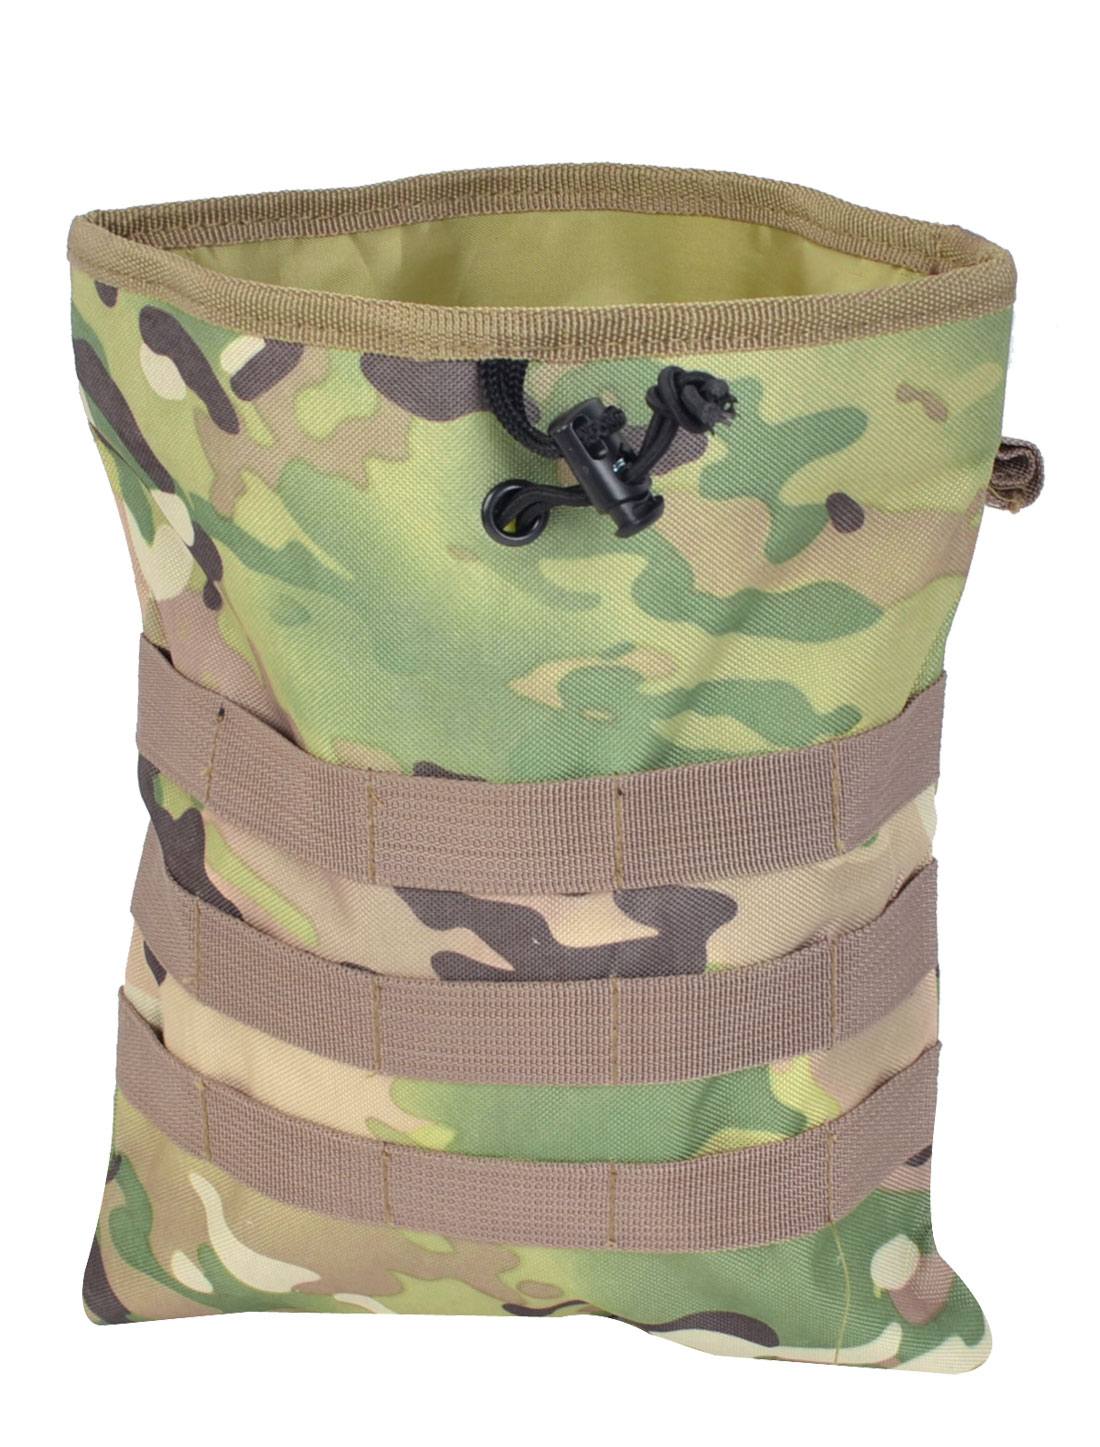 Outdoor Drawstring Closure Camouflage Pattern Canvas Pouch Waist Pack Bag